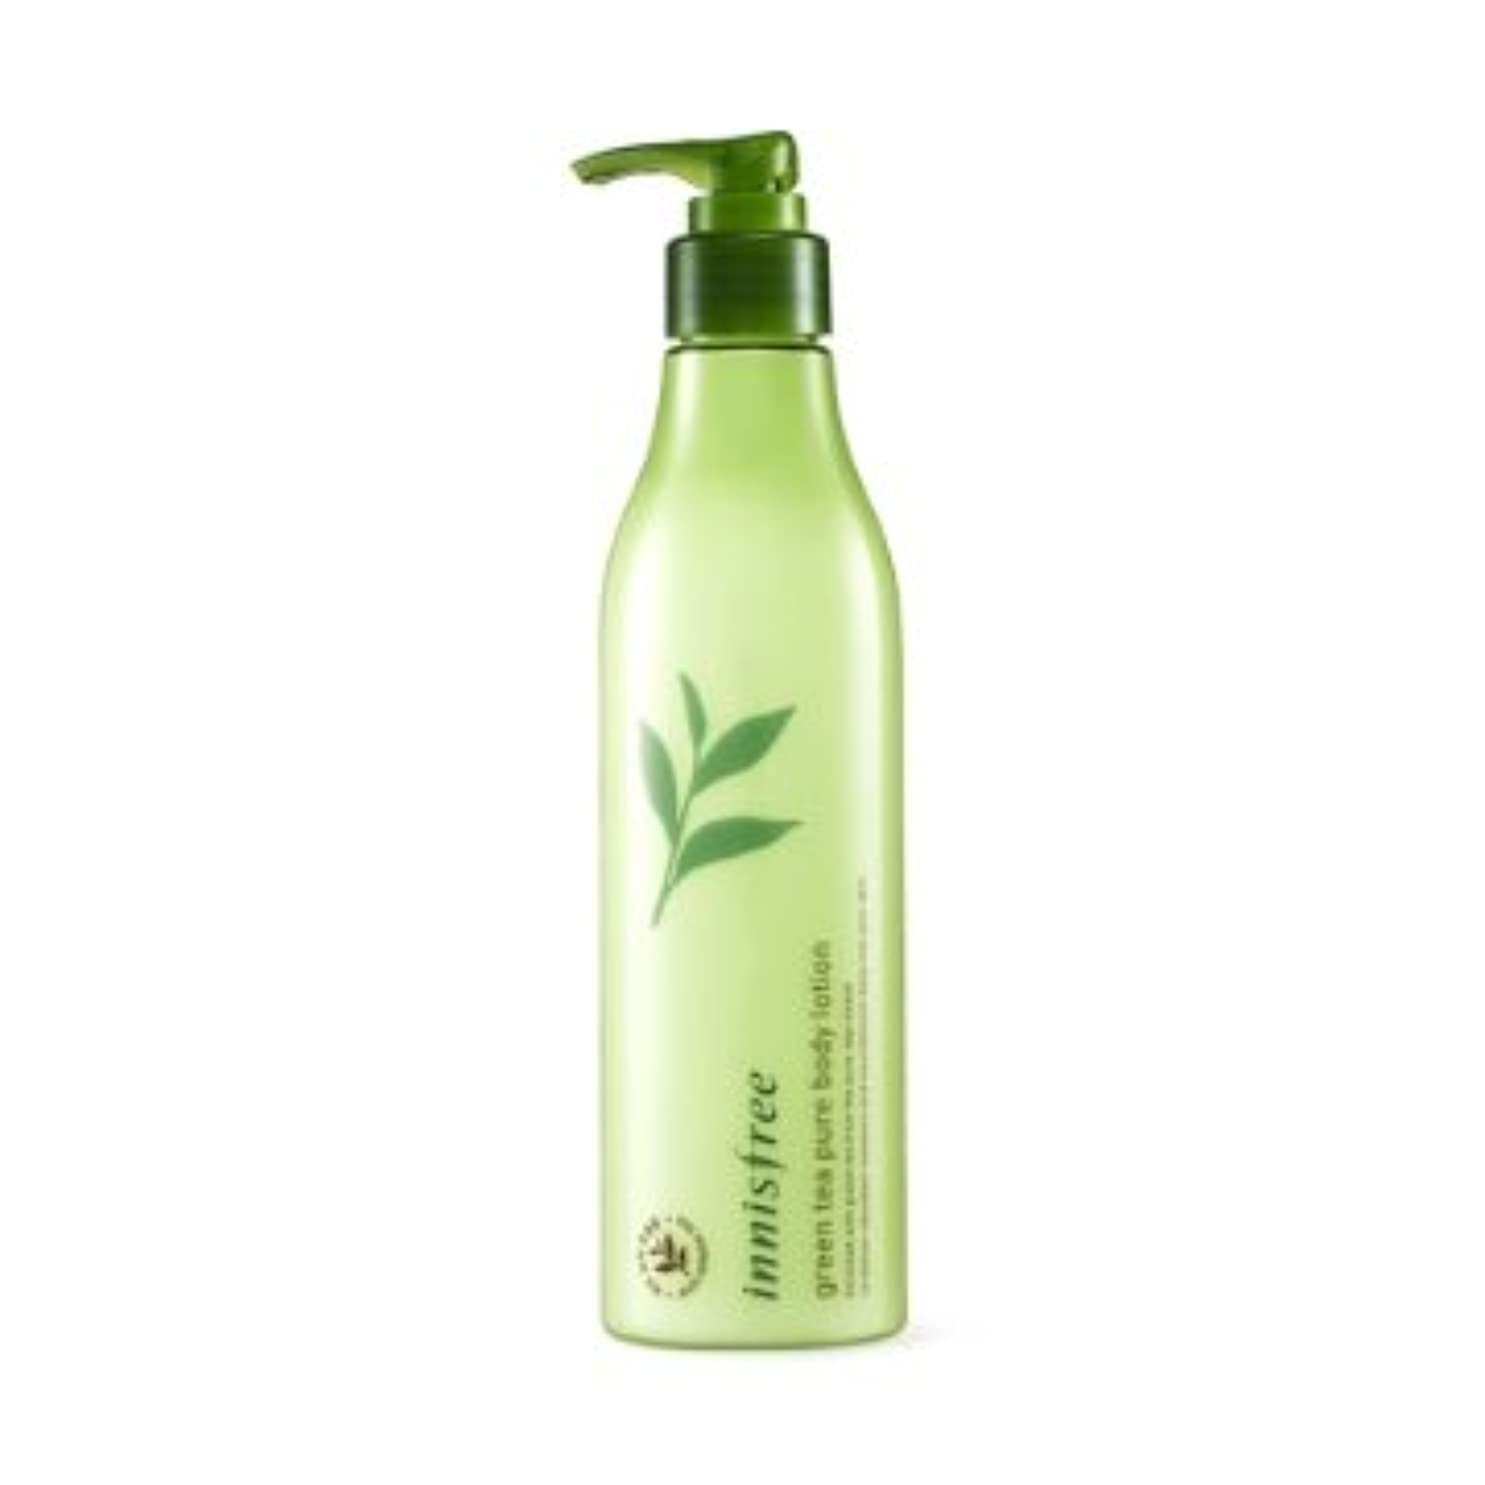 翻訳者仲間稚魚【イニスフリー】Innisfree green tea pure body lotion - 300ml (韓国直送品) (SHOPPINGINSTAGRAM)